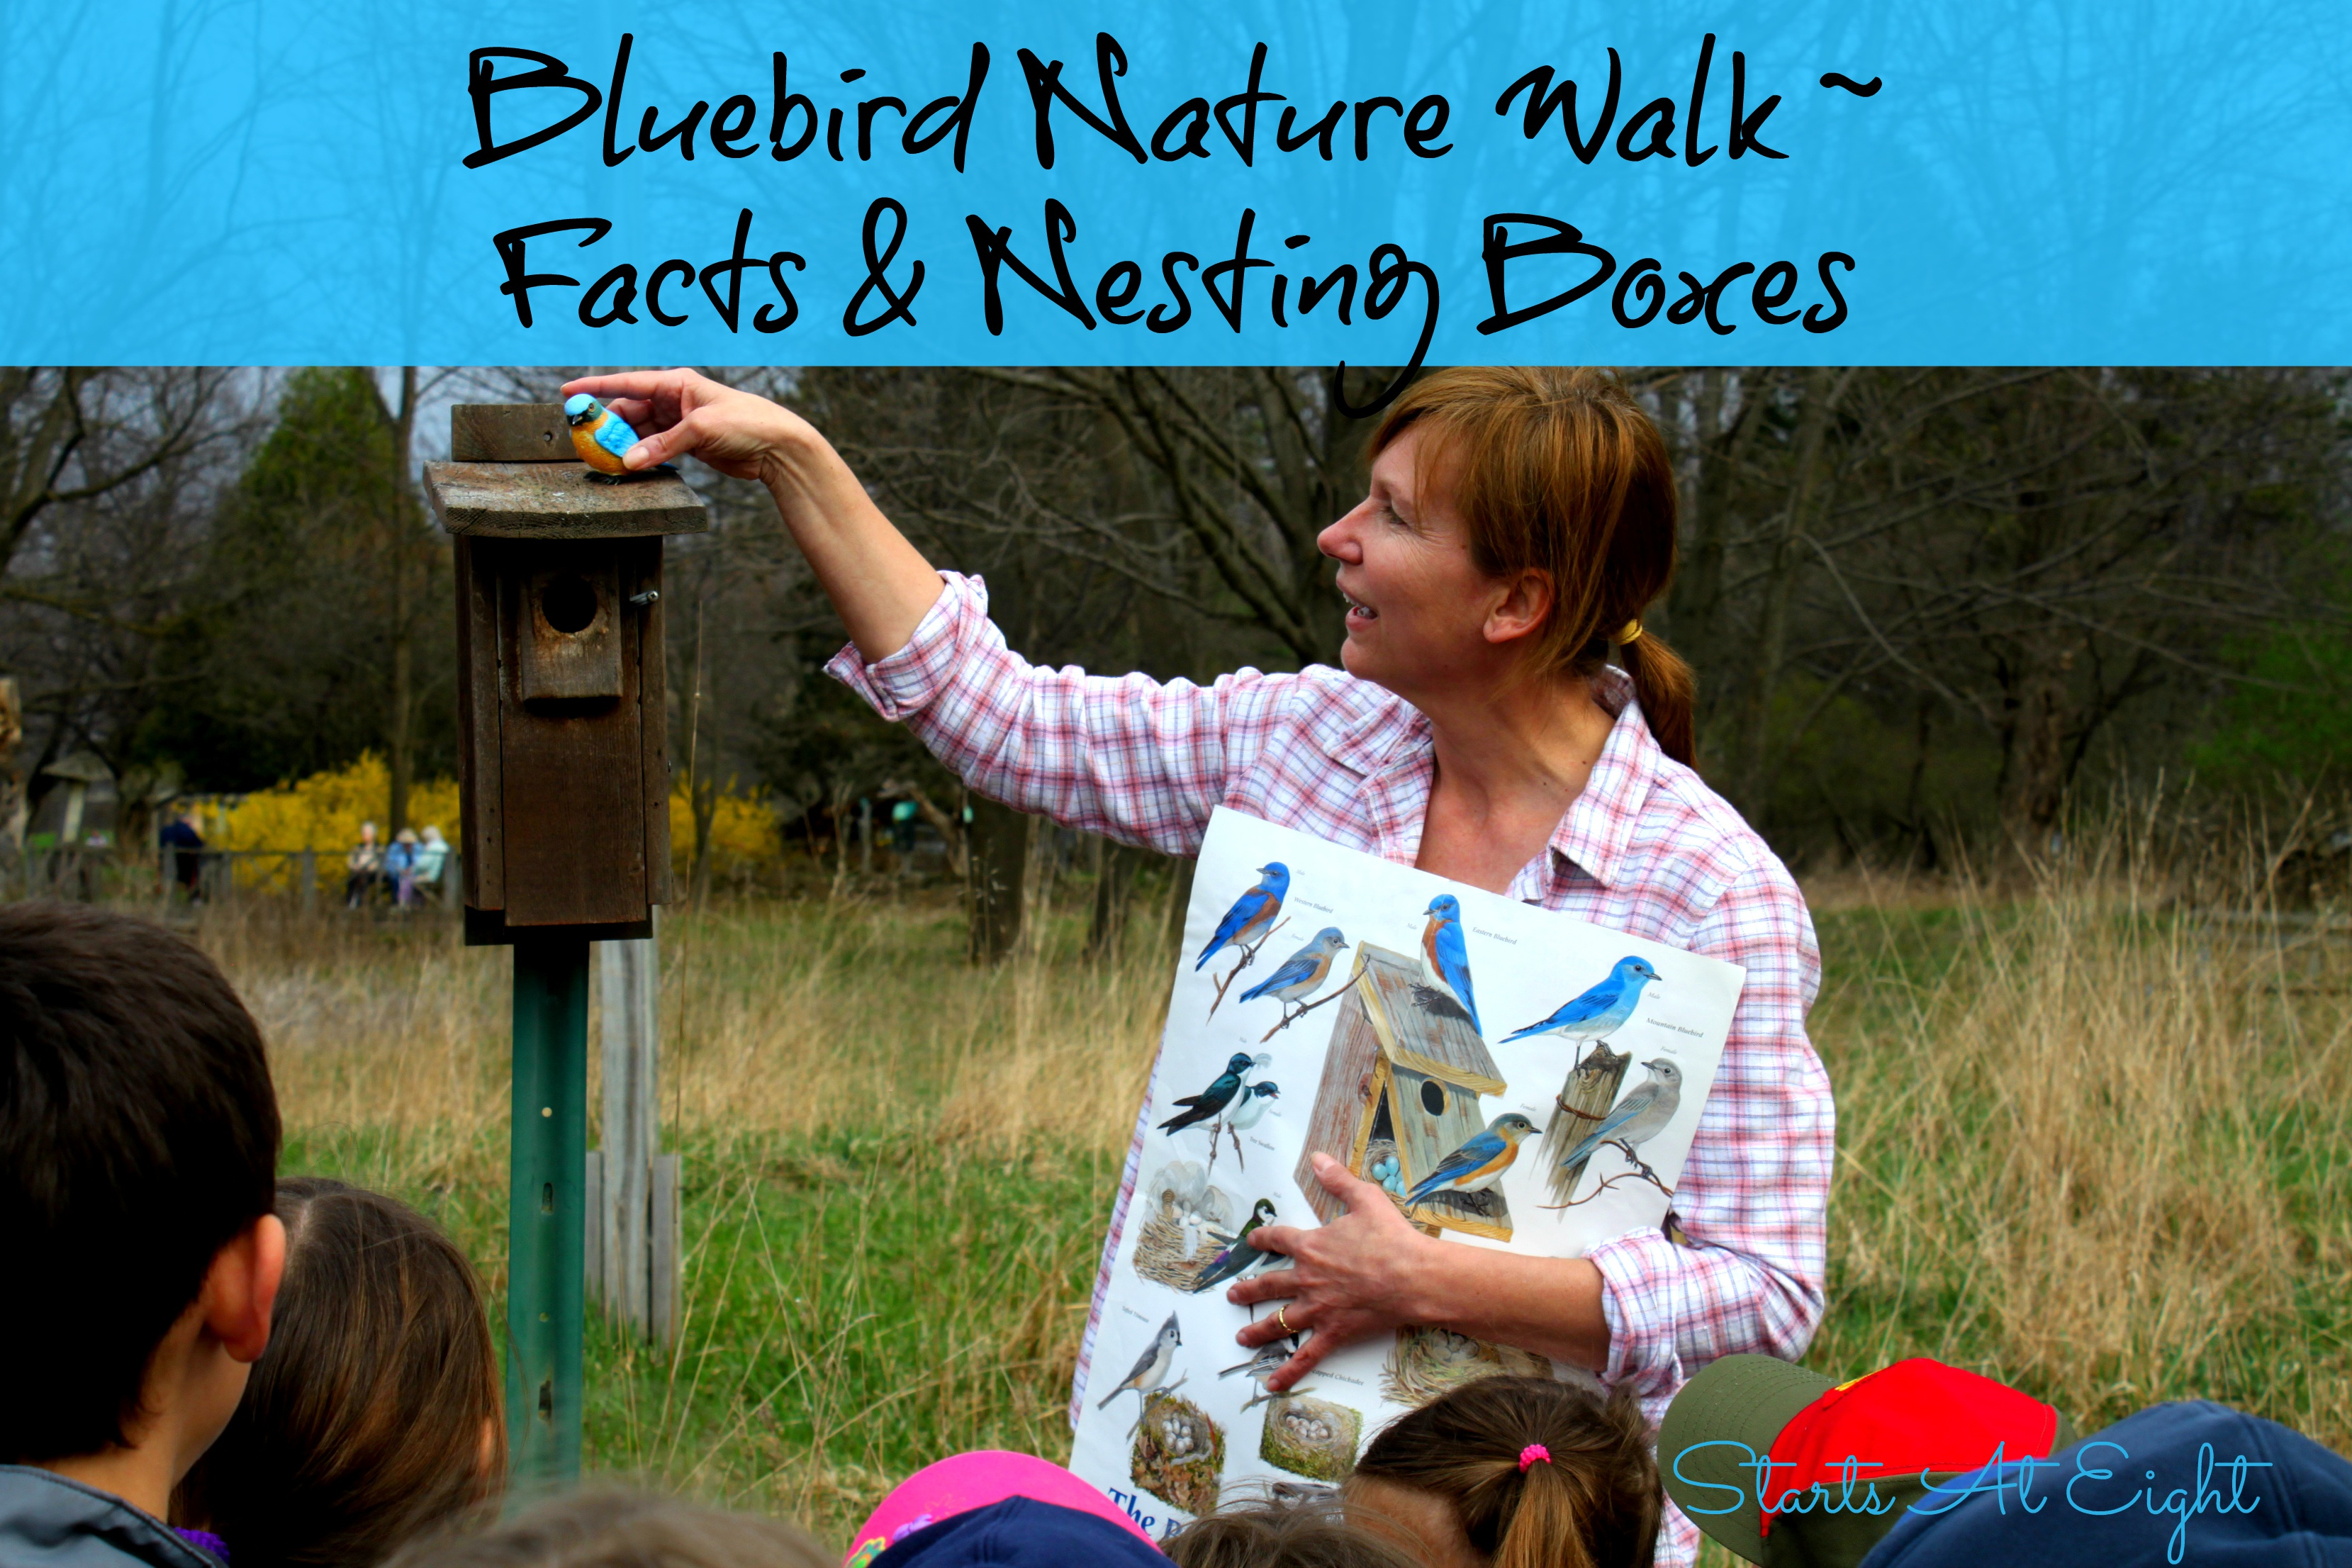 Bluebird Nature Walk ~ Includes Facts & Nesting Boxes